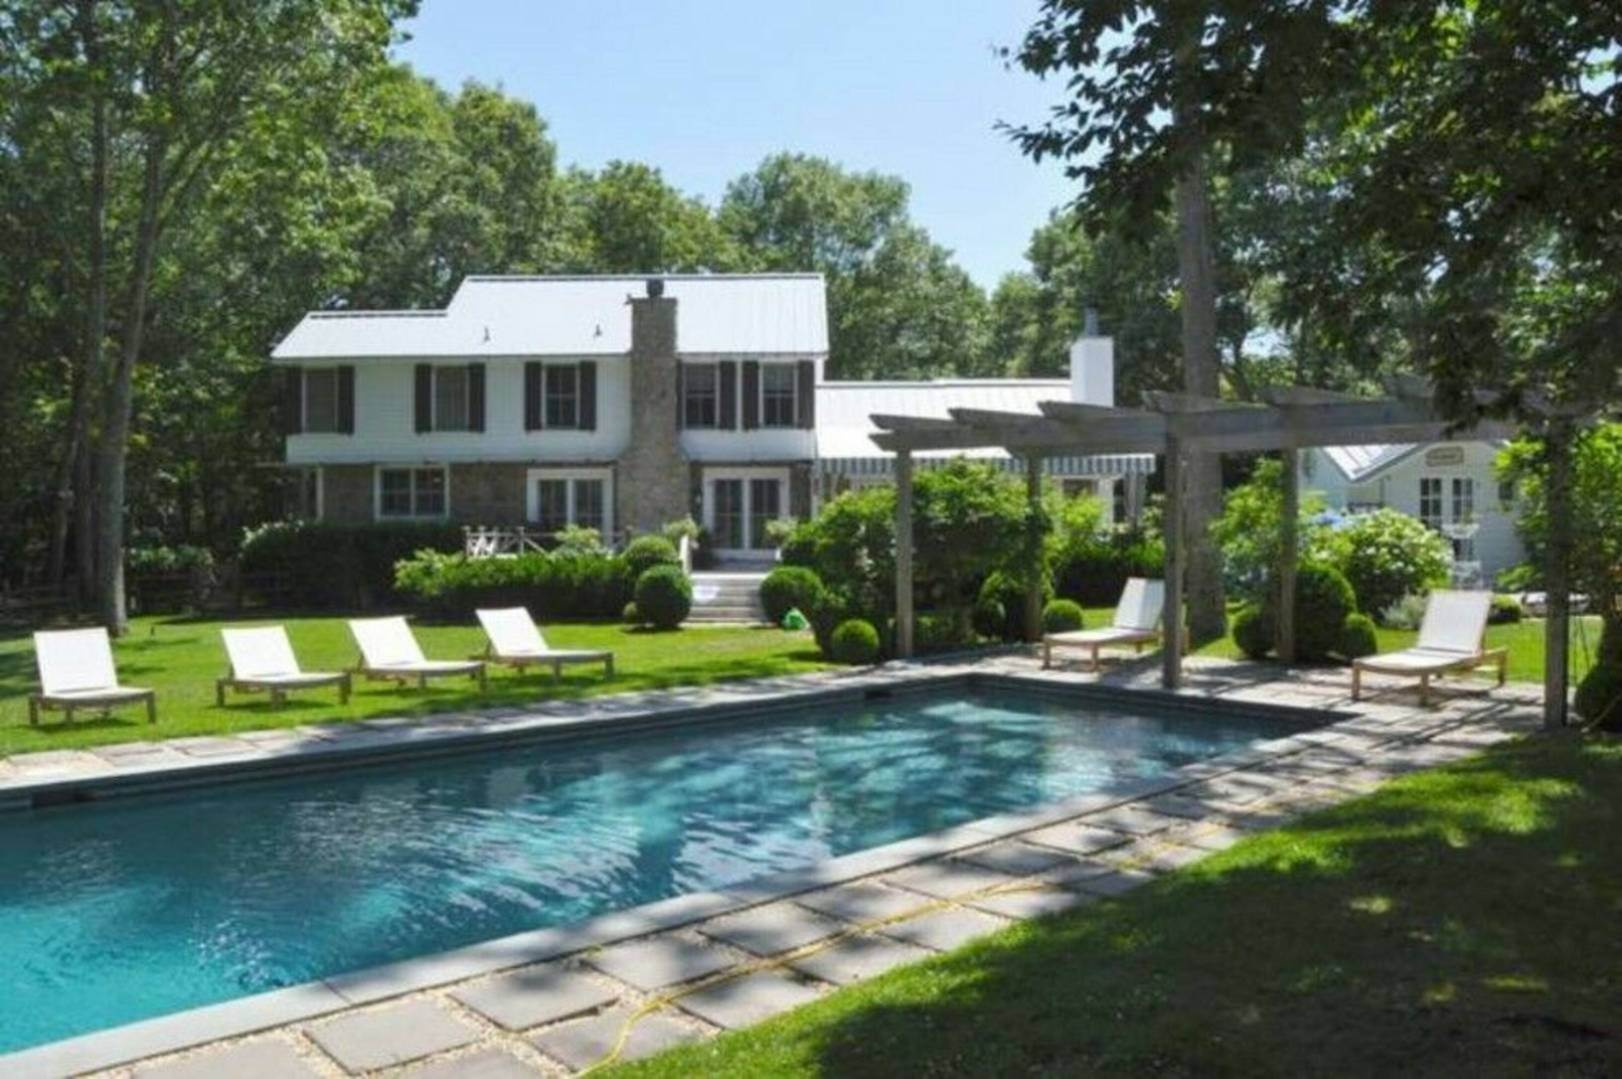 Single Family Home at Elegant Waterfront Home-Pond And Pool Southampton, NY 11968